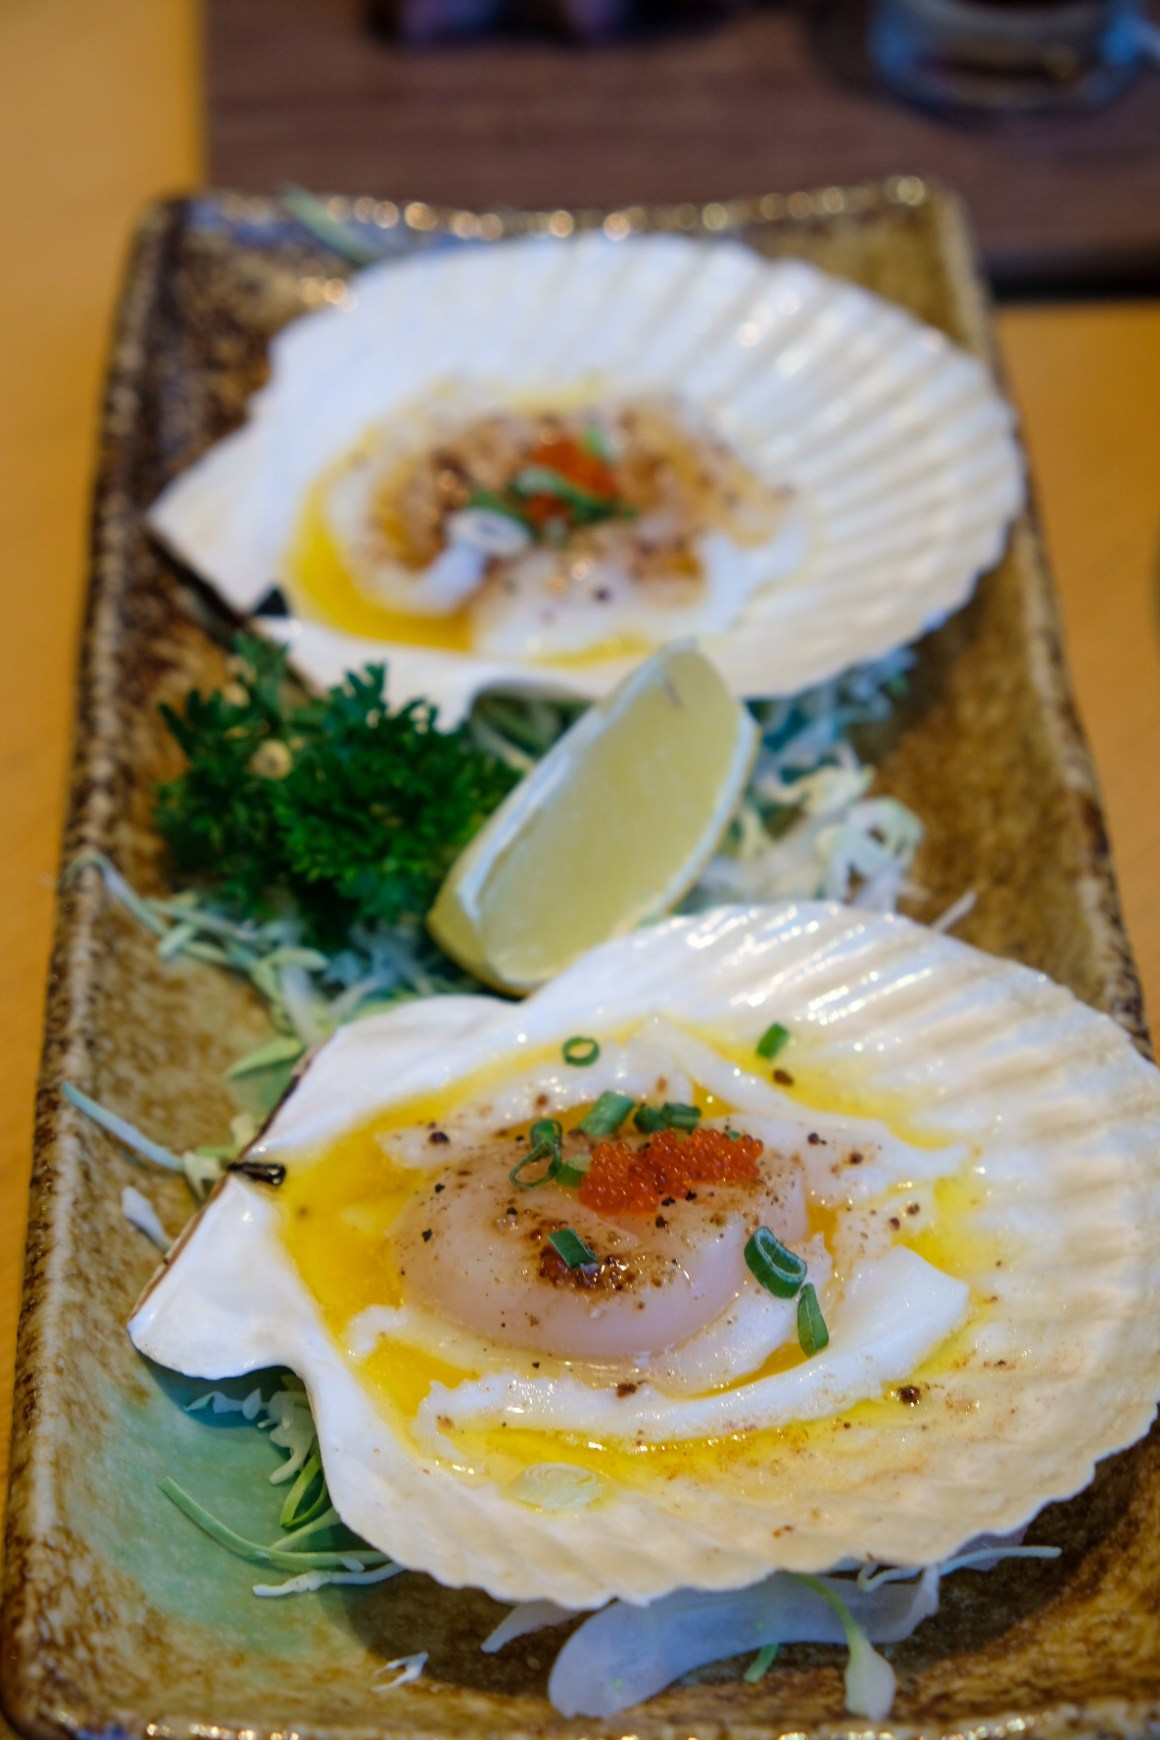 Sushi Tei's New Autumn Menu - Butter Scallop ($9.80)